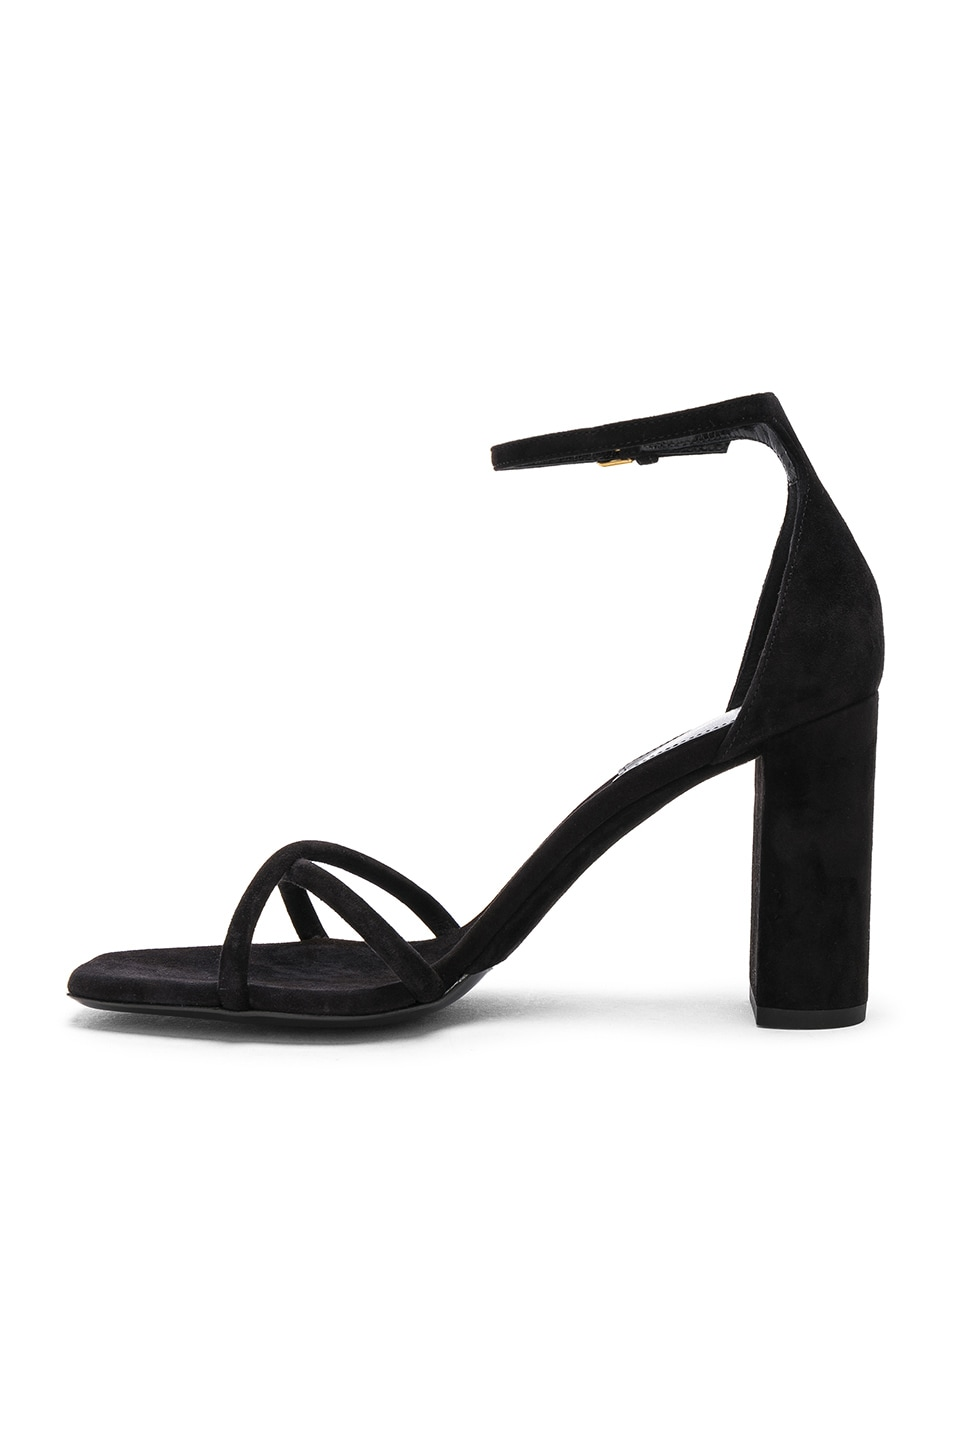 Image 5 of Saint Laurent Suede Pin Loulou Ankle Strap Sandals in Black